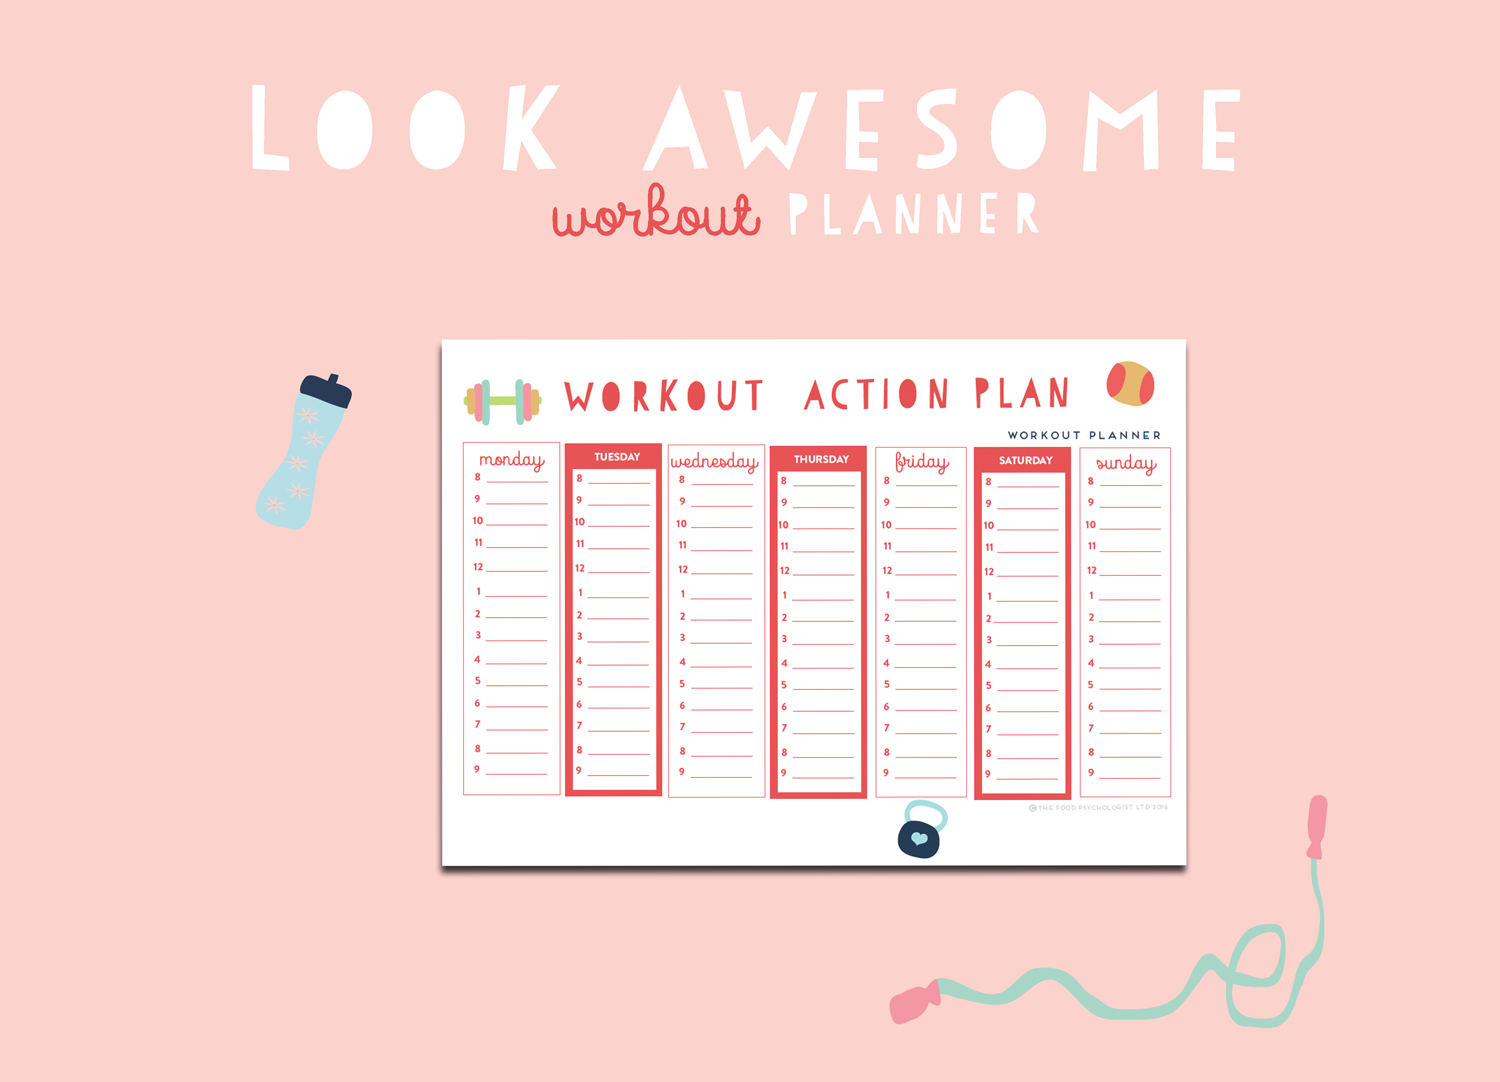 Look Awesome Workout Planner